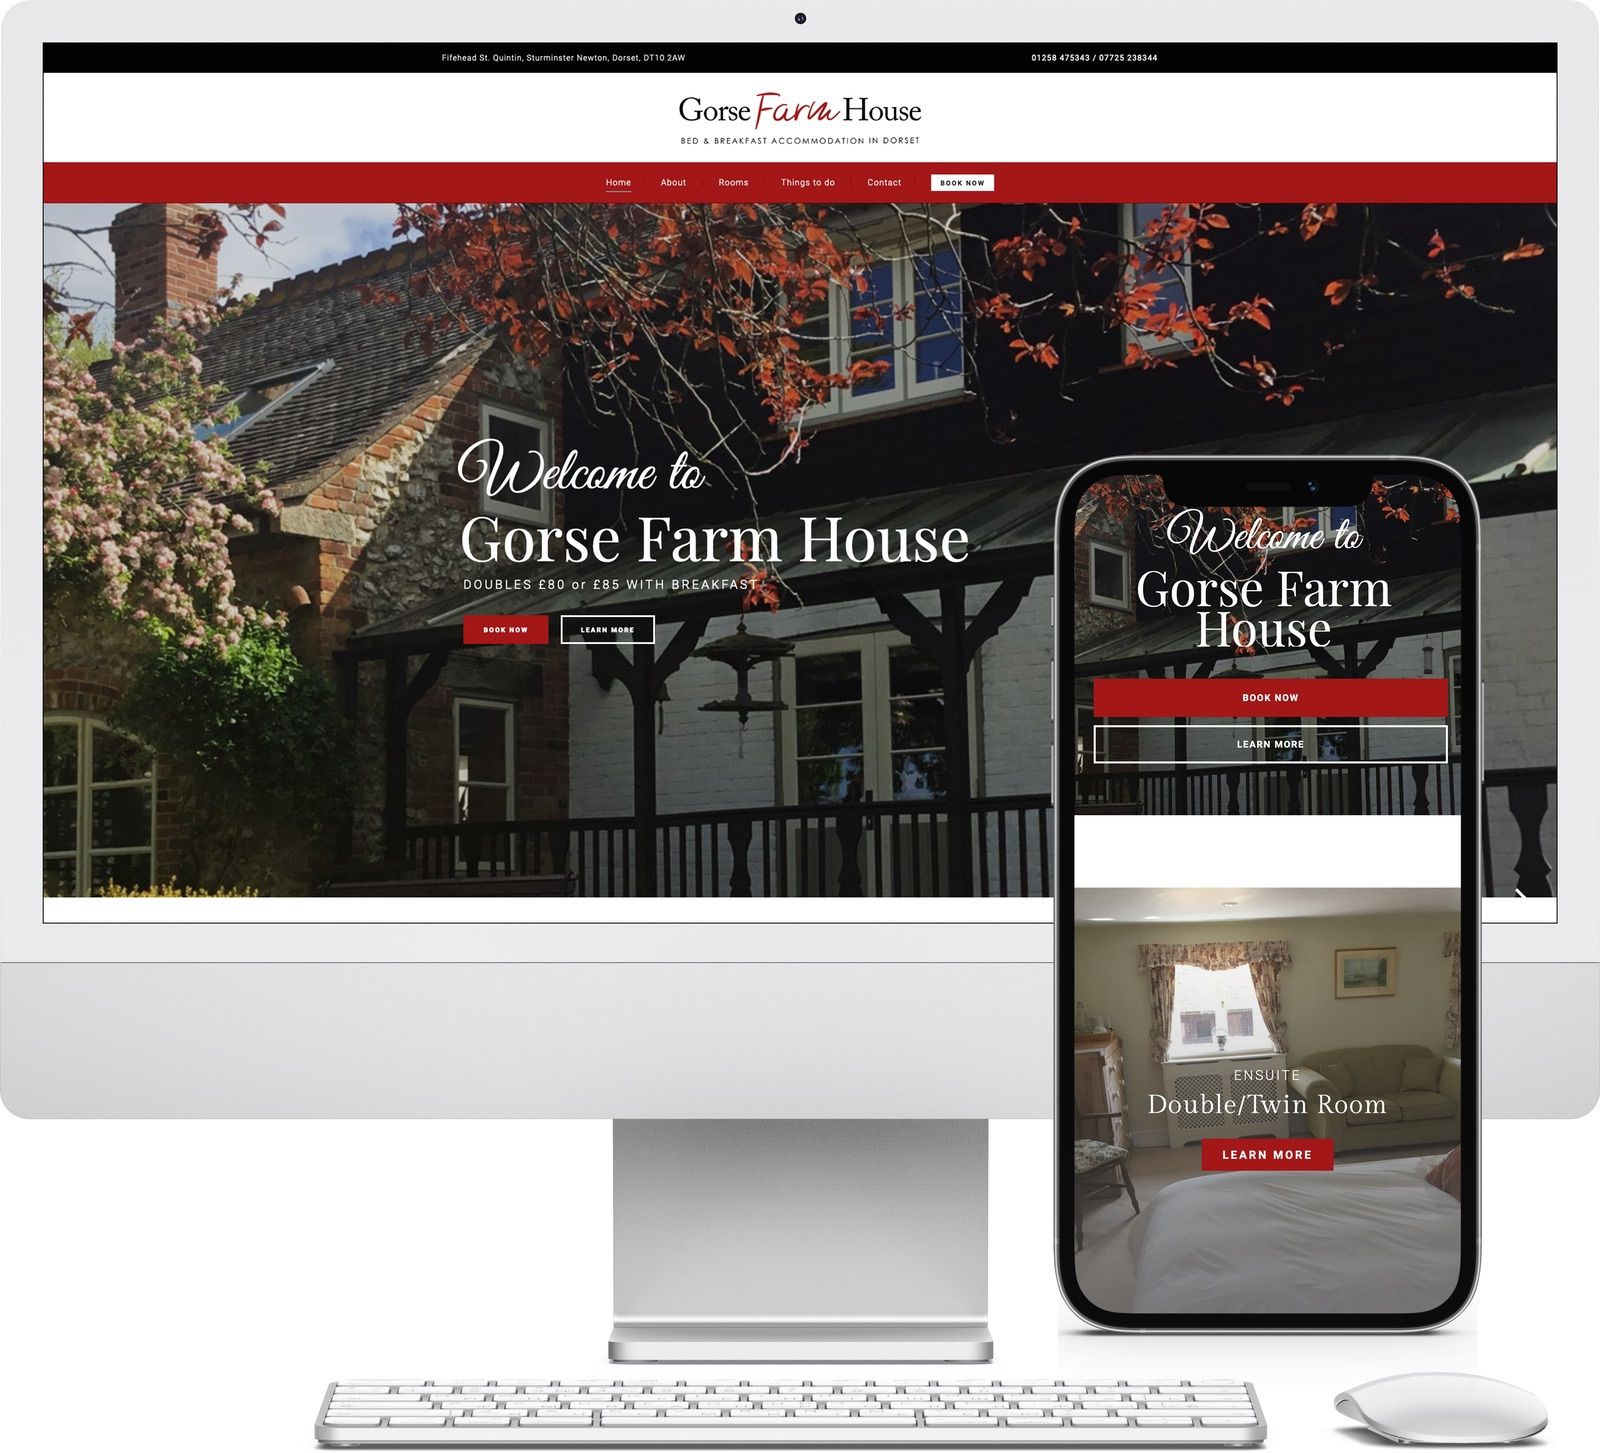 Gorse Farm House Bed and Breakfast iMac and iPhone mockup image - Riotspace Creative